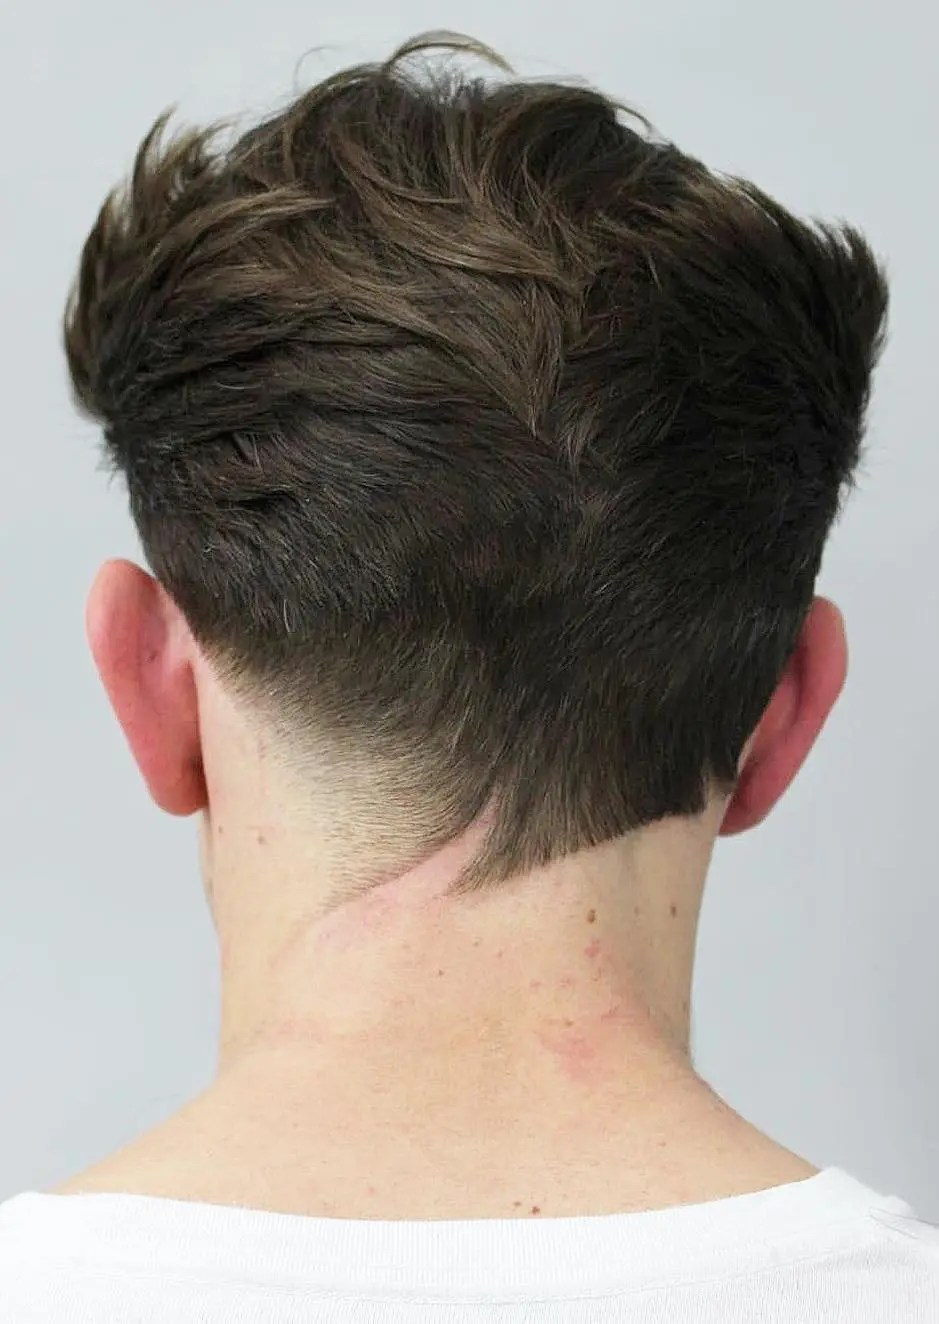 V Shaped Haircut Men's : shaped, haircut, men's, V-Shaped, Neckline, Haircuts, Unconventional